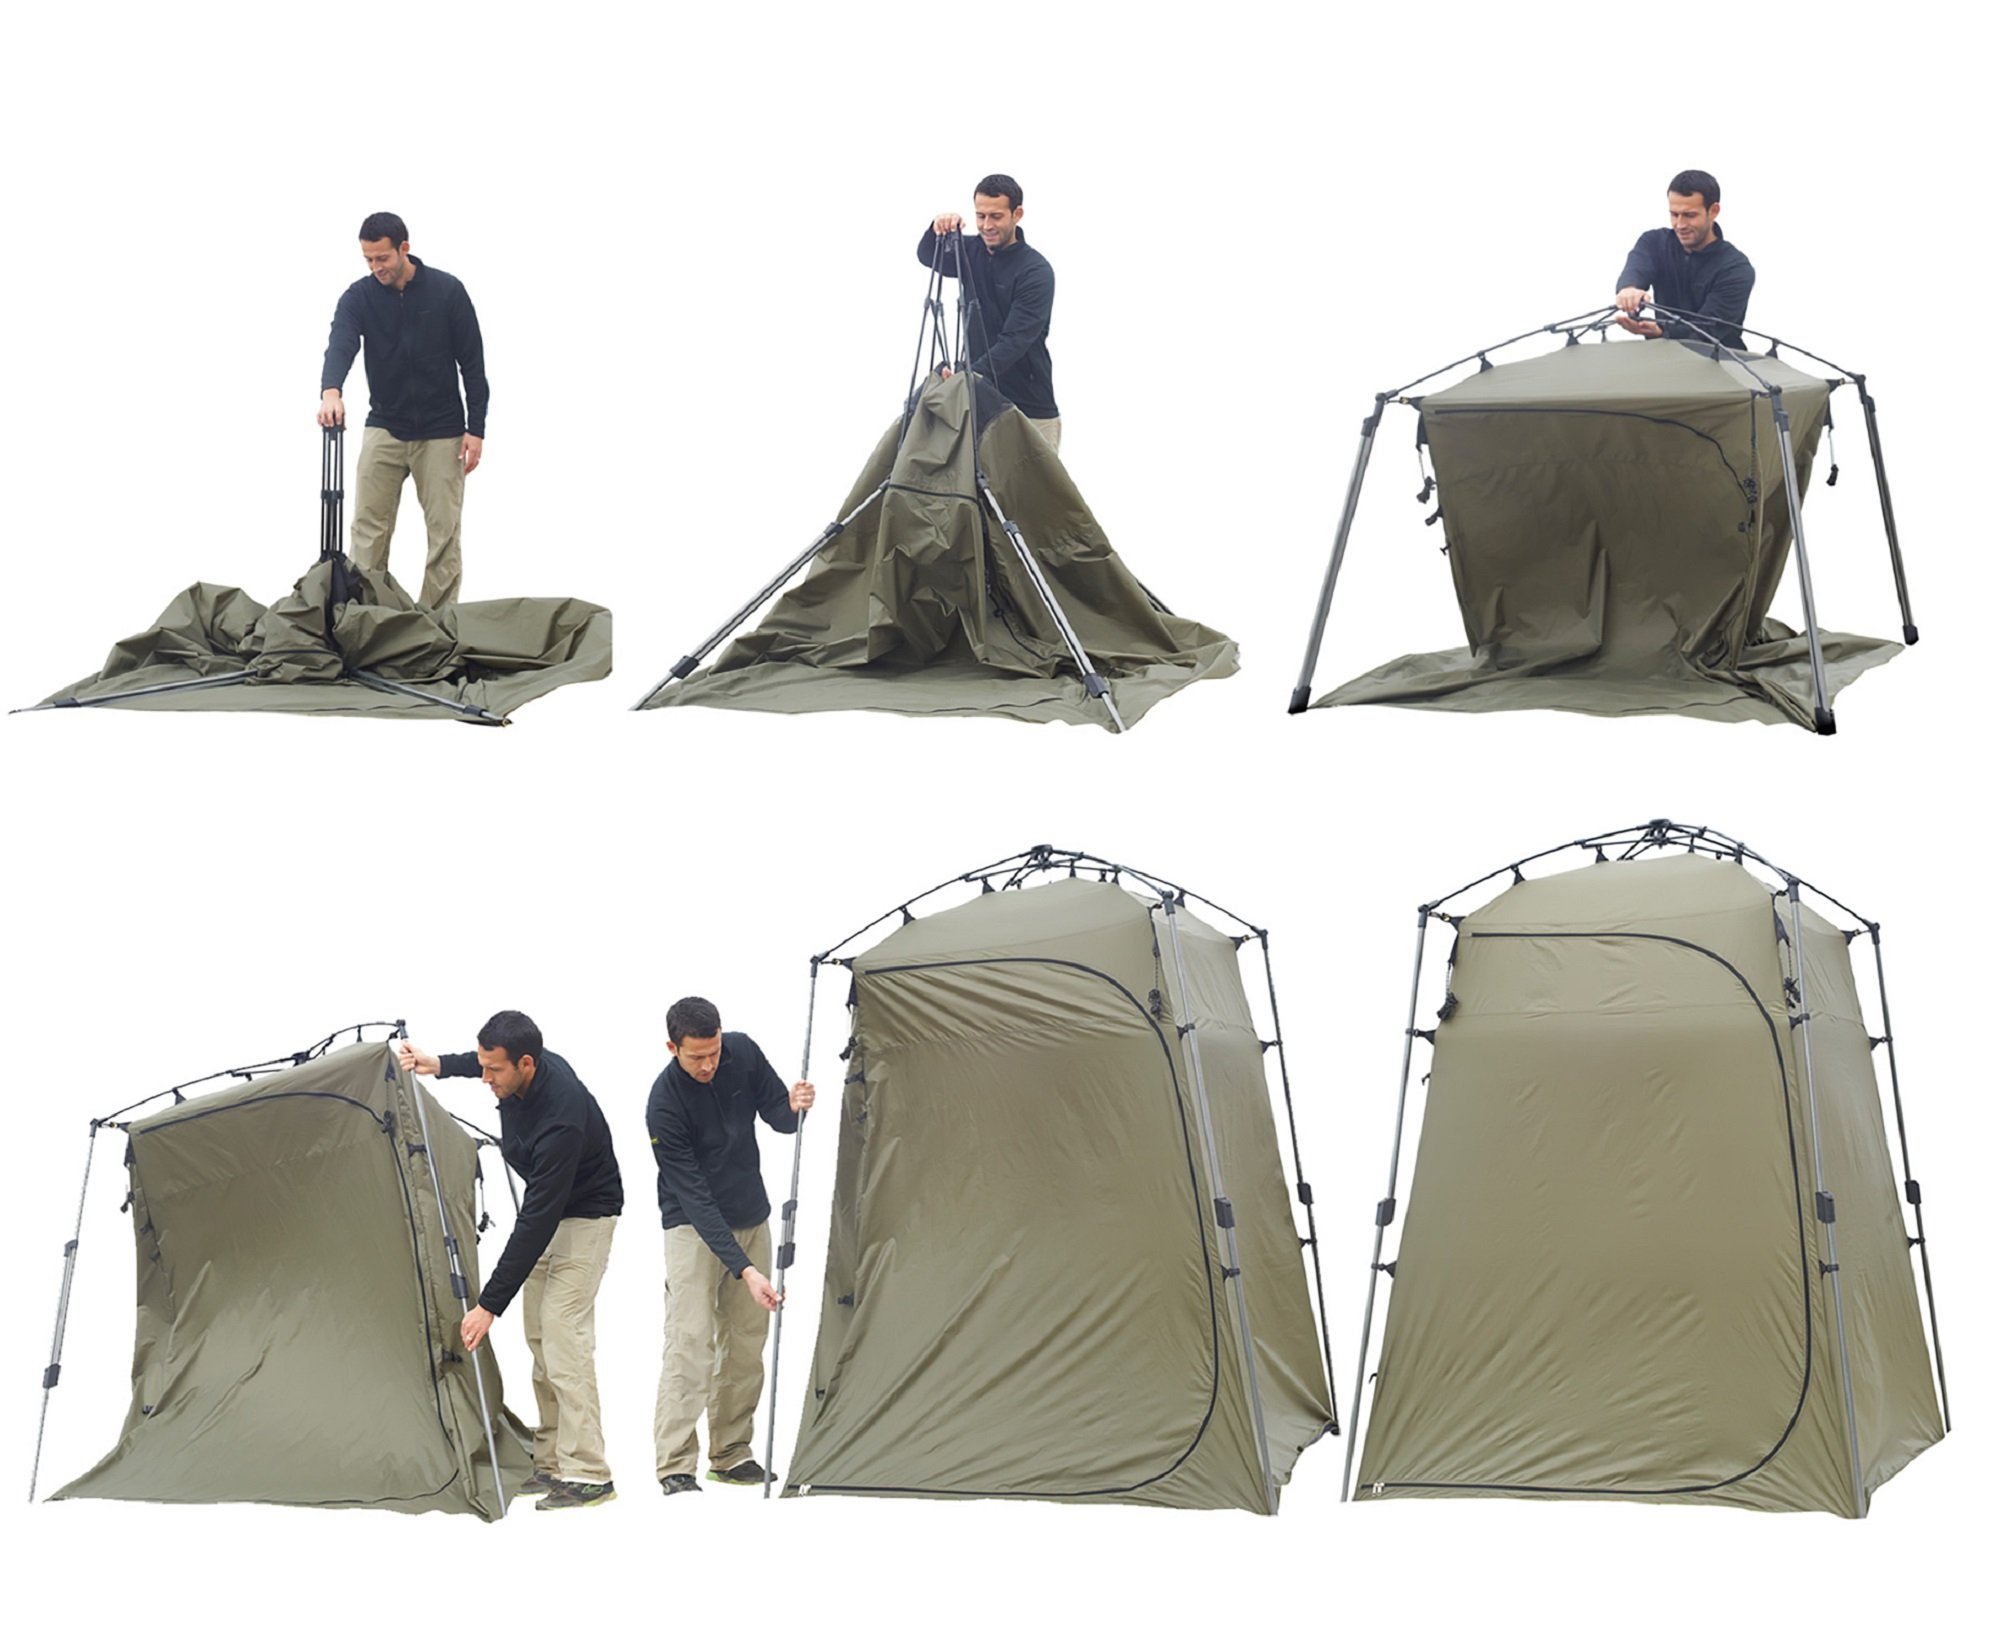 Lightspeed Outdoors Xtra Wide Quick Set Up Privacy Tent, Toilet, Camp Shower, Portable Changing Room by Lightspeed Outdoors (Image #2)